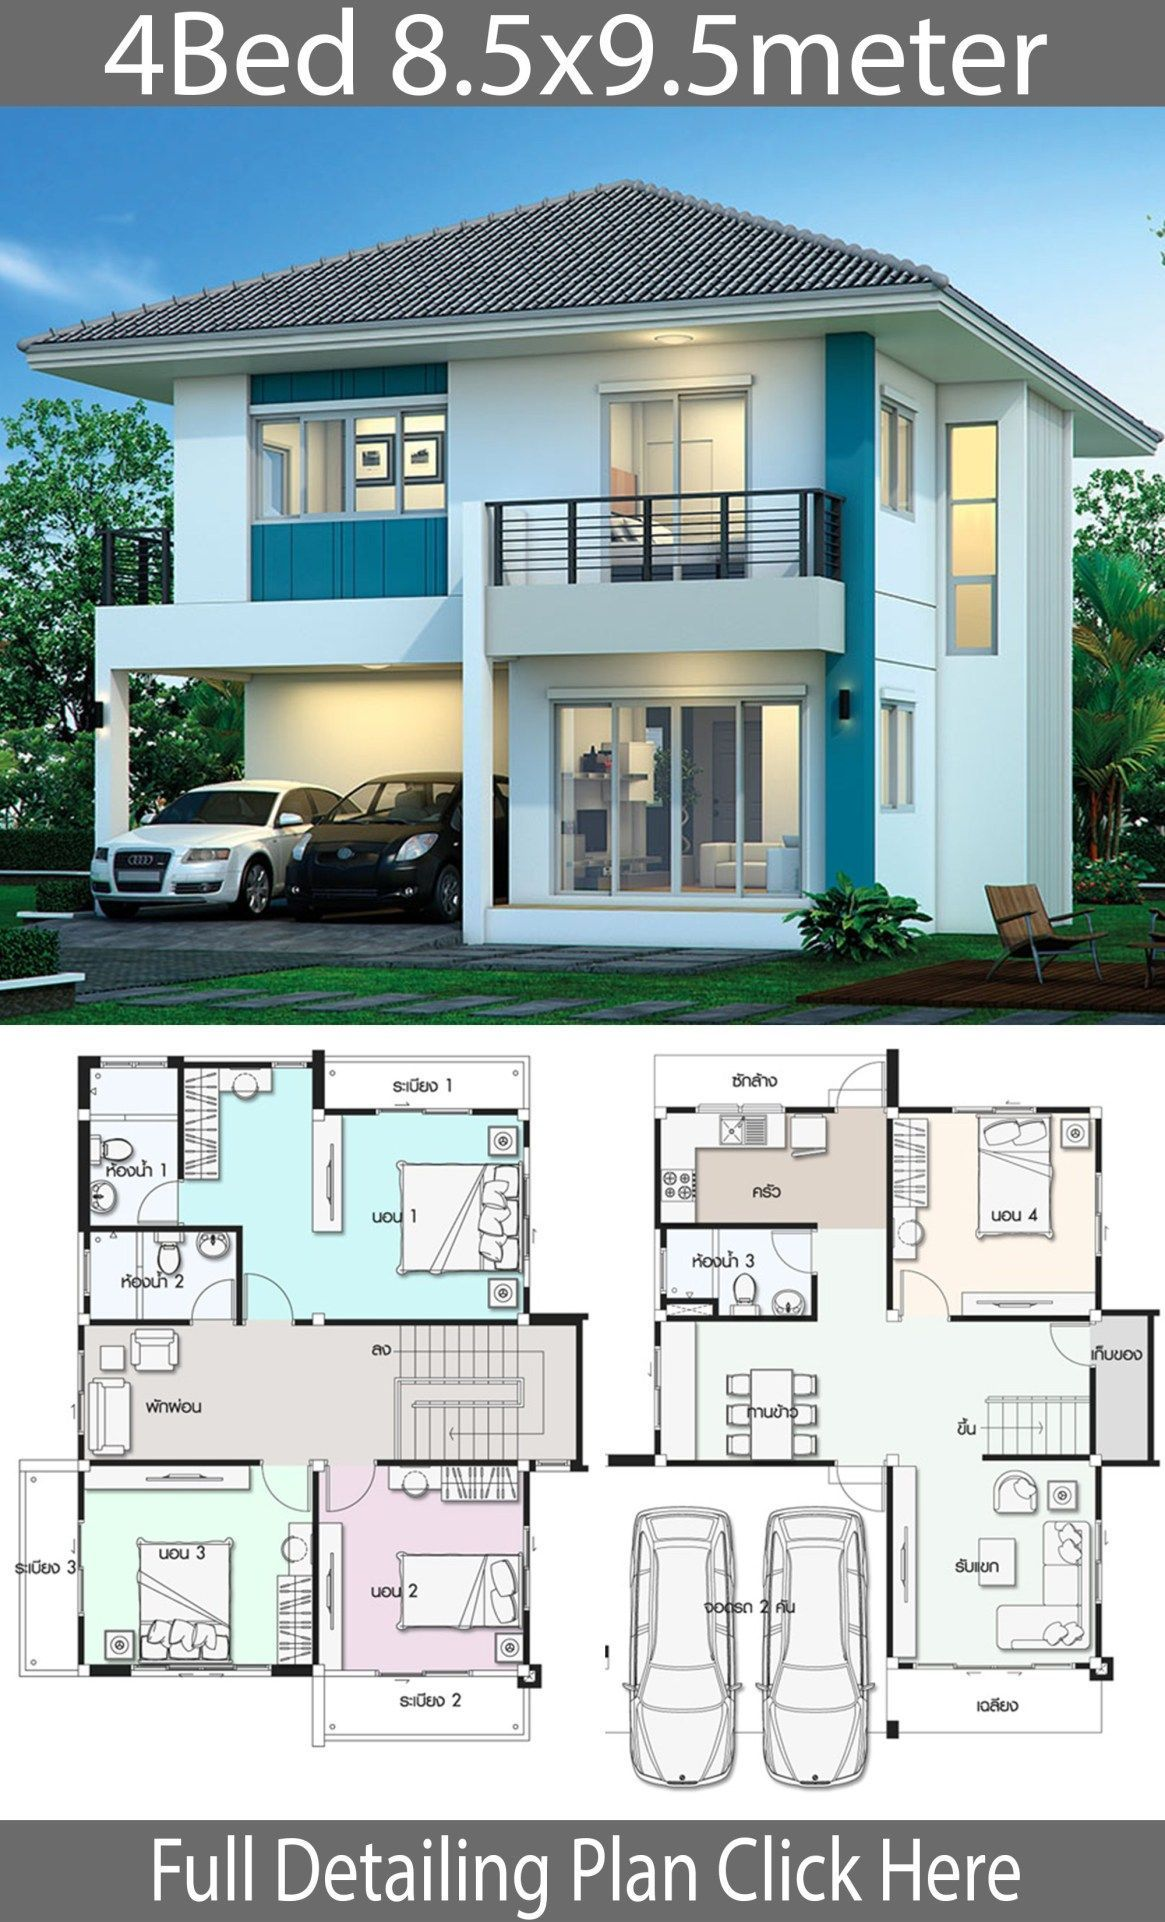 House Design Plan 8 5x9 5m With 4 Bedrooms Hausdesign House Design Plan 8 5x9 5 House Designs Exterior Small House Design Exterior 2 Storey House Design